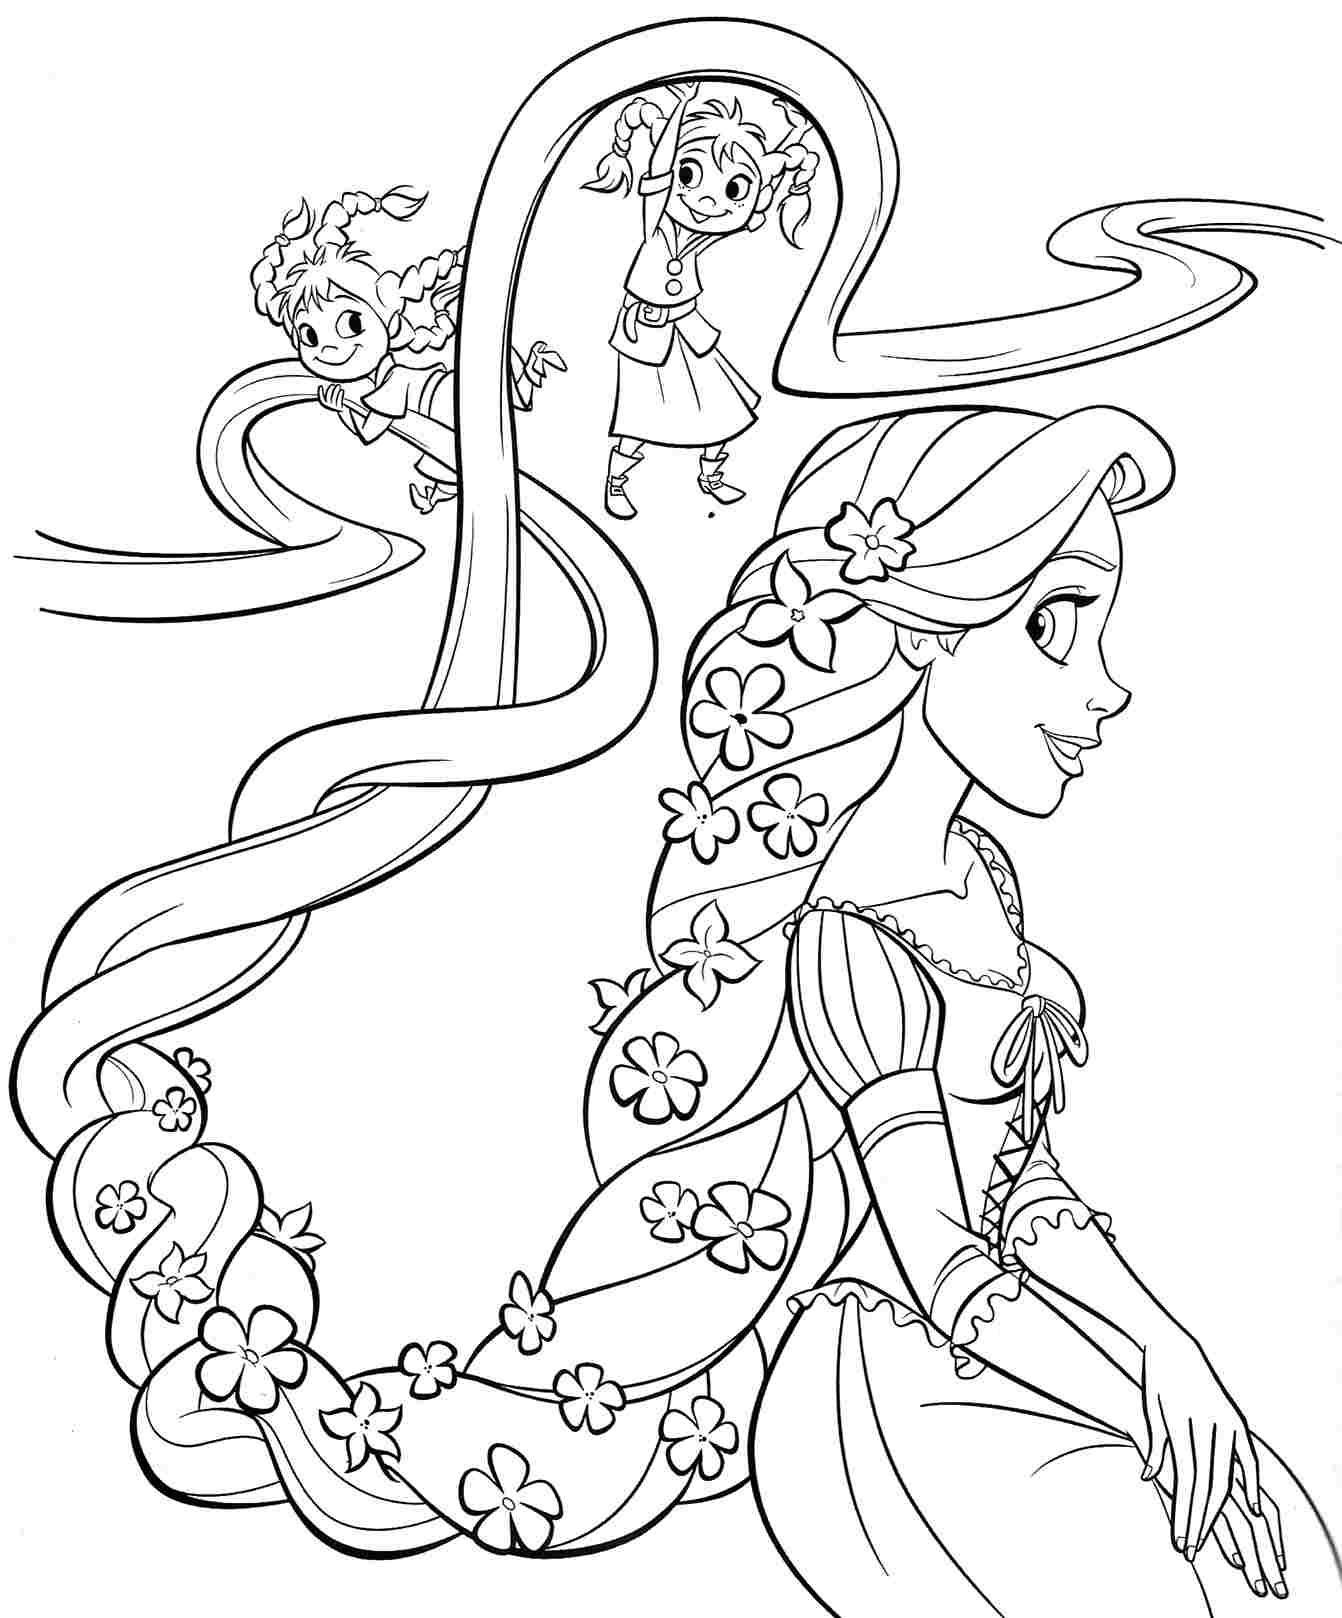 Disney Princess Coloring Pages Tangled Coloring Page